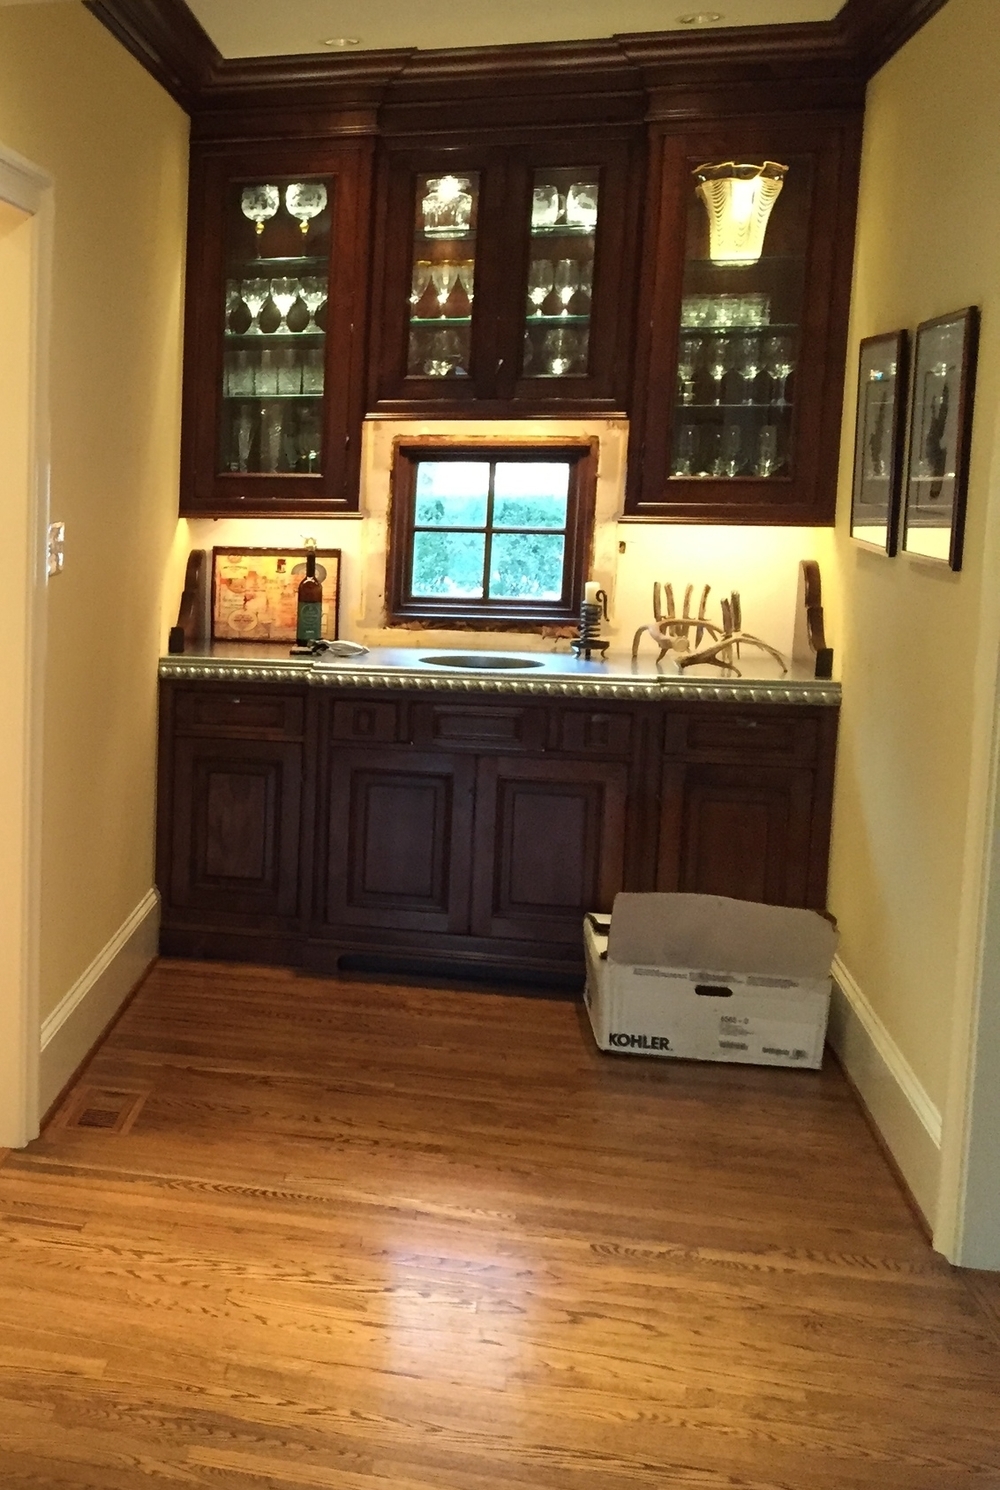 Under-cabinet & interior cabinet lighting.